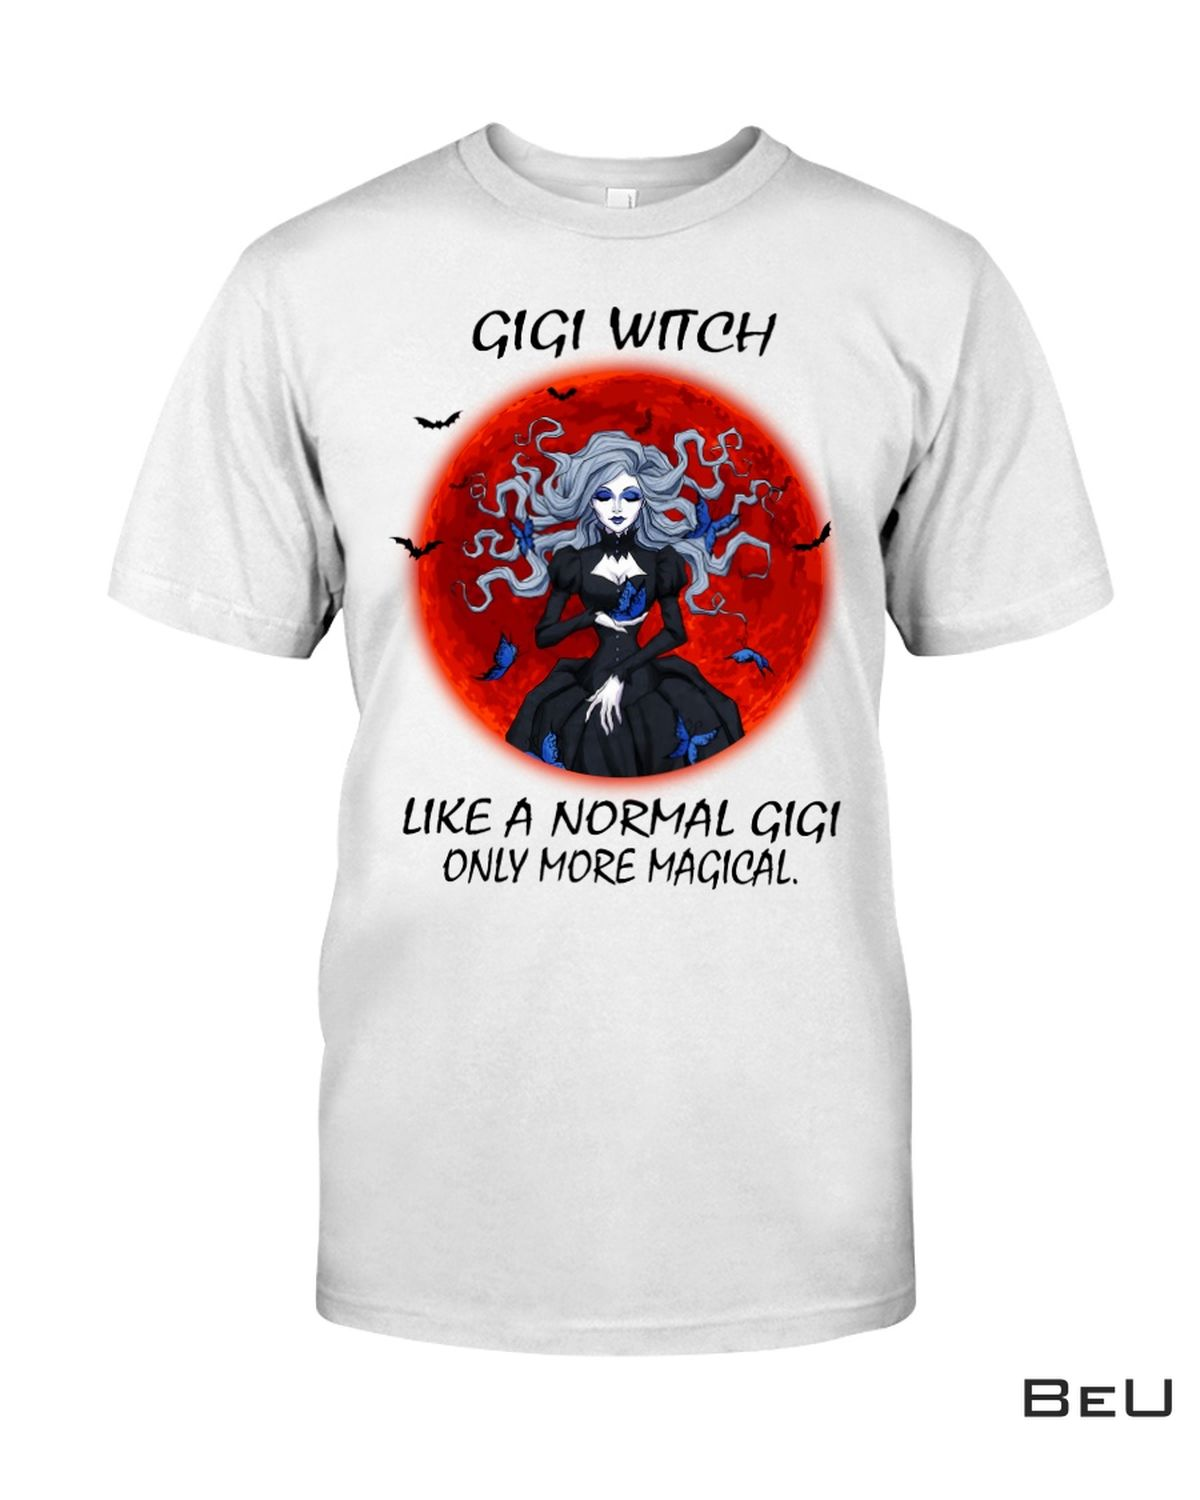 Gigi Witch Like A Normal Gigi Only More Magical Shirt, hoodie, tank top